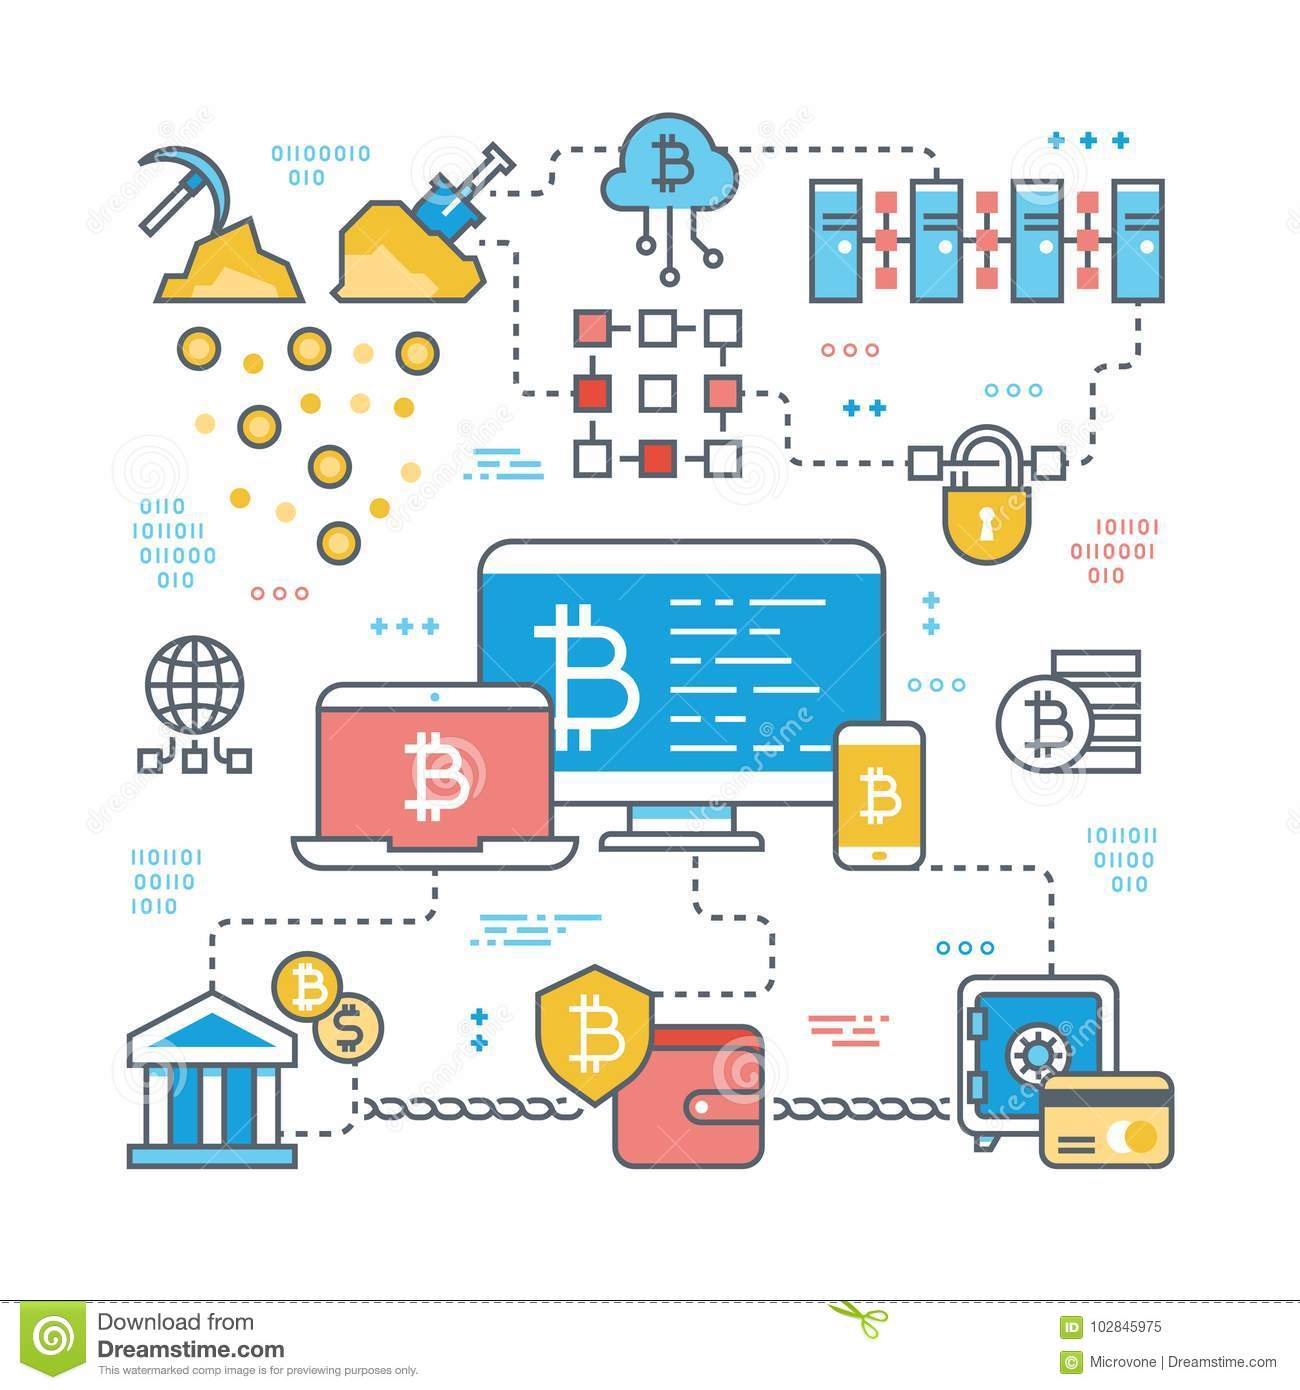 Blockchain And Internet Cryptocurrency Transaction Bitcoin Stock Market Finance Support Vector Concept